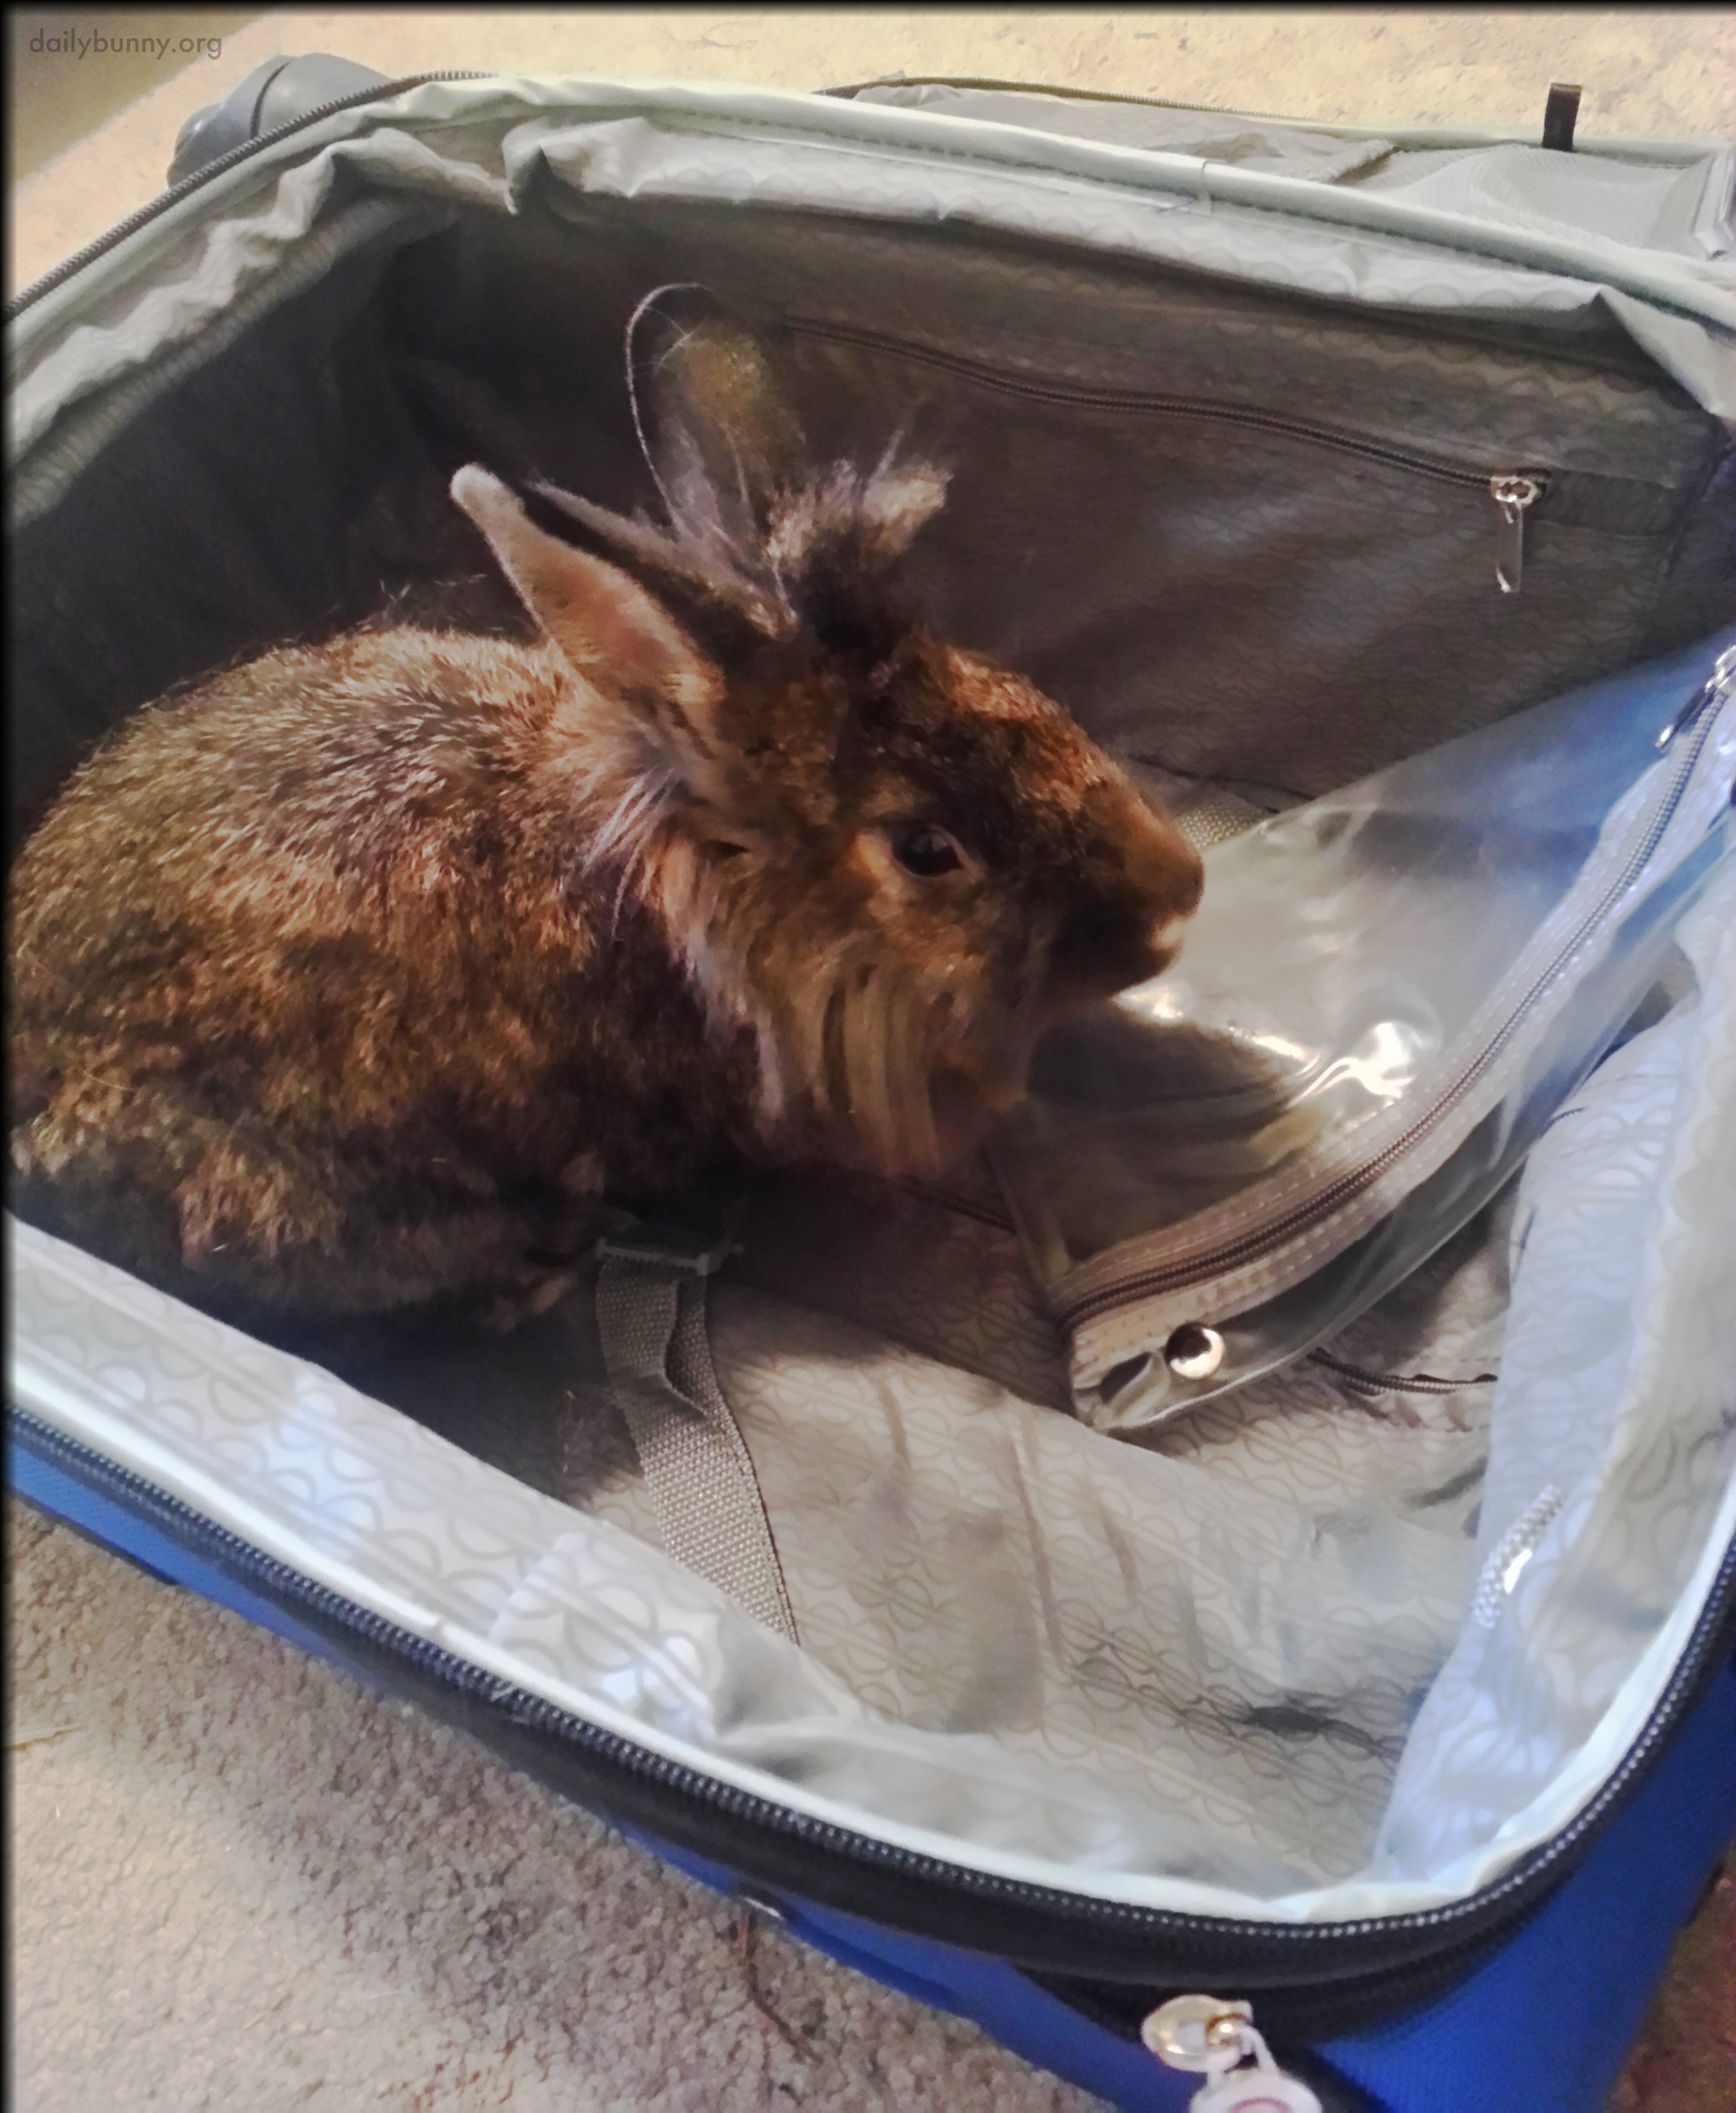 Well-Intentioned Bunny Helps His Human Pack